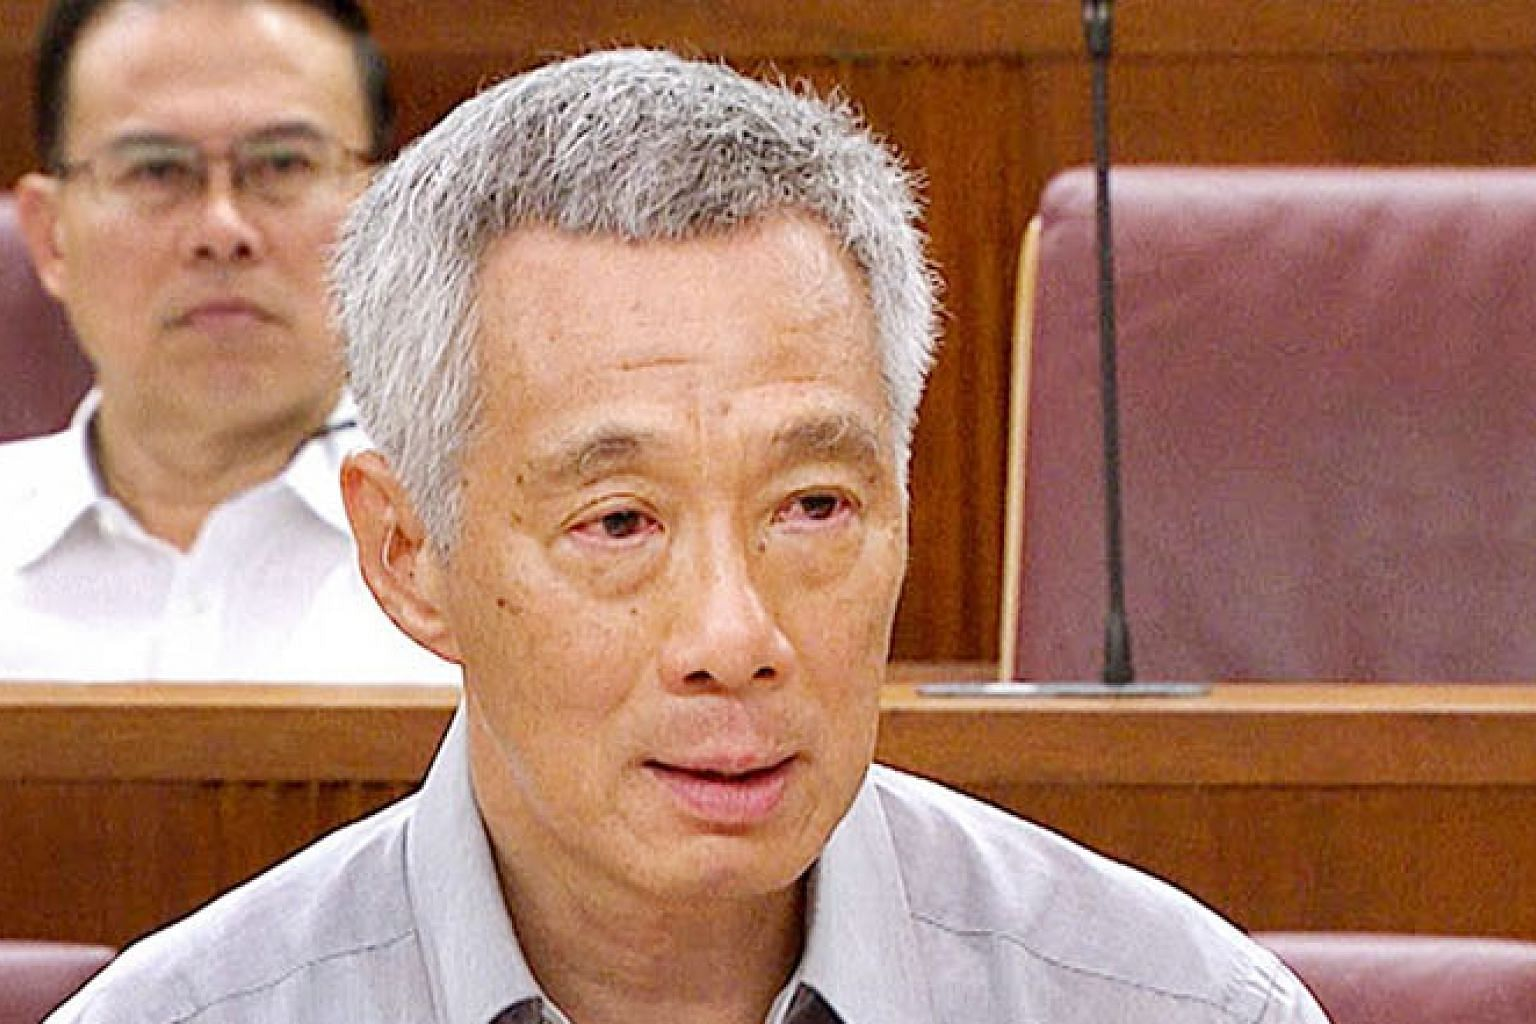 Prime Minister Lee Hsien Loong said his purpose has not been to pursue a family fight, but to clear the air, and to restore public confidence in the system. He said that with the benefit of the statements and debate in Parliament, Singaporeans are no